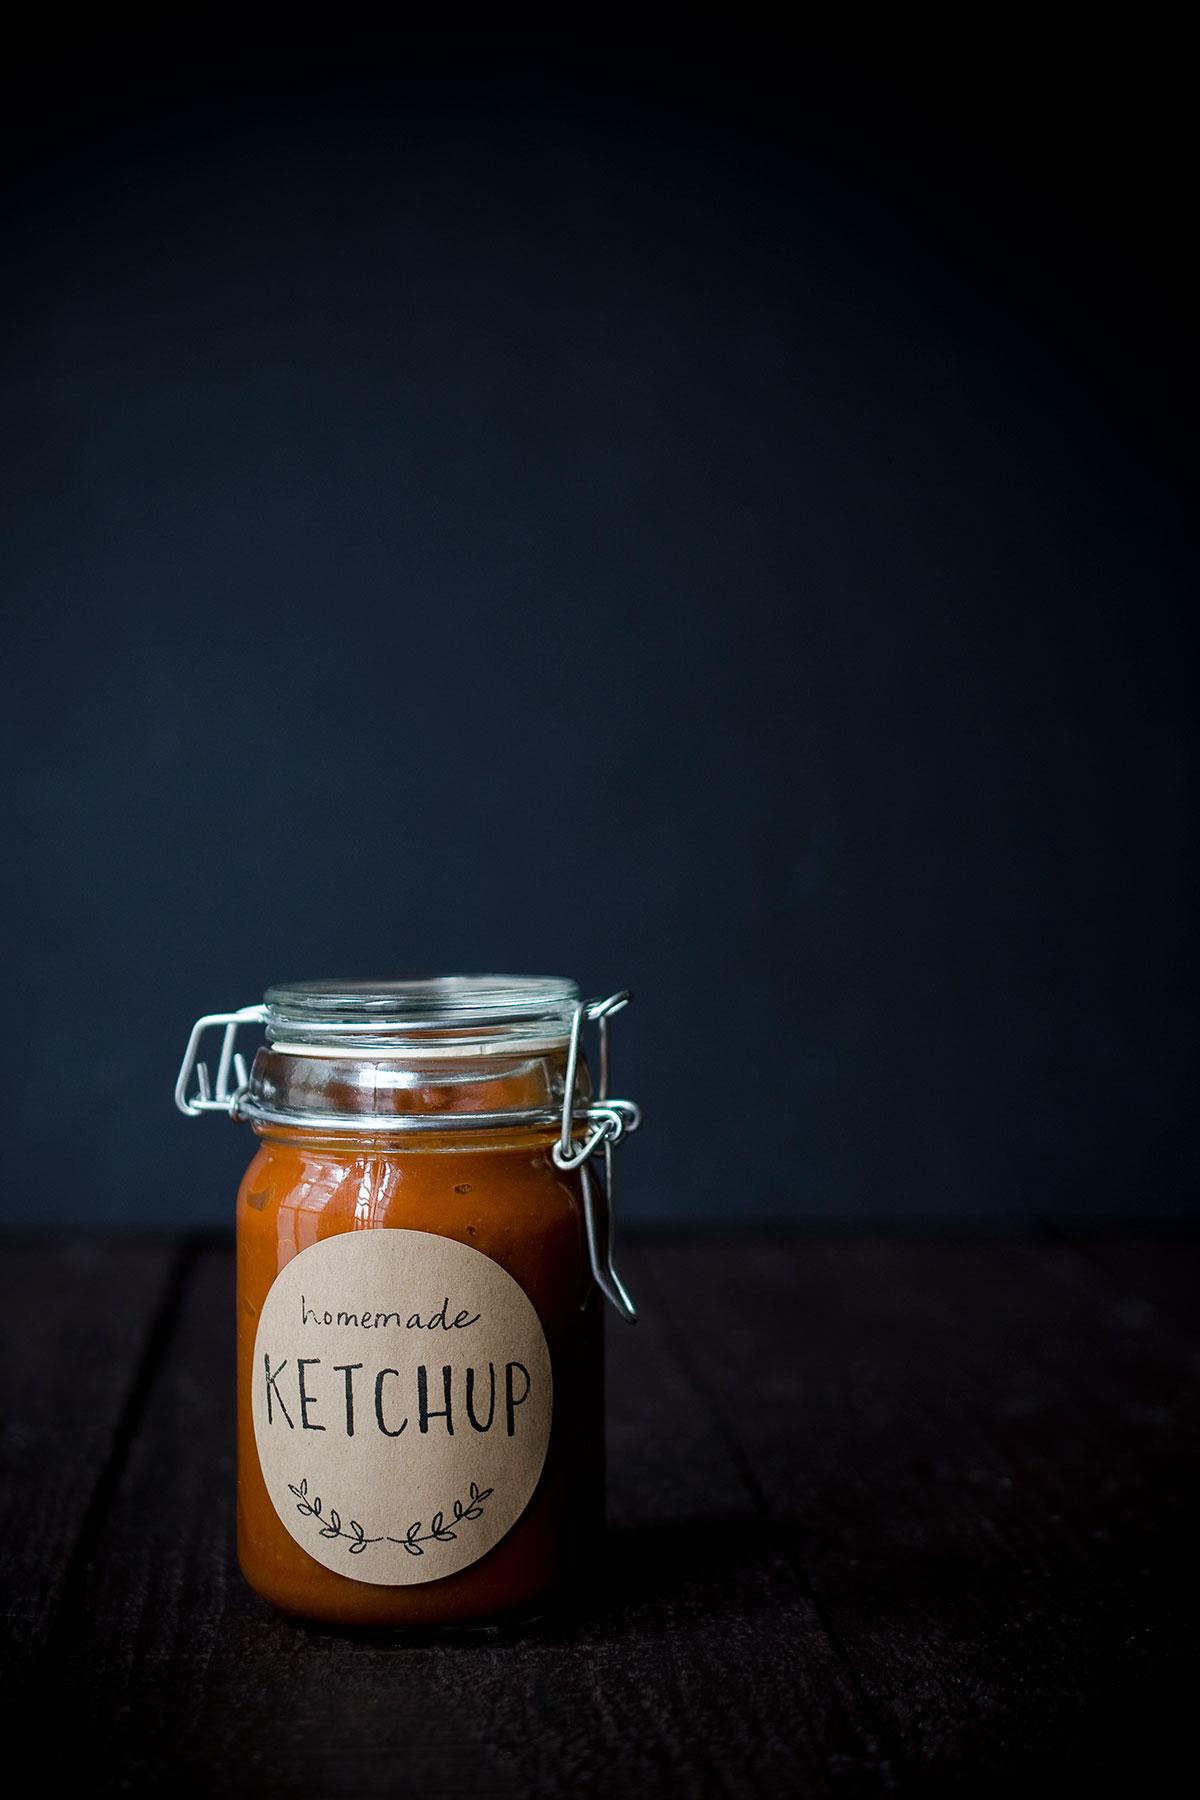 A photo of homemade ketchup in a mason jar